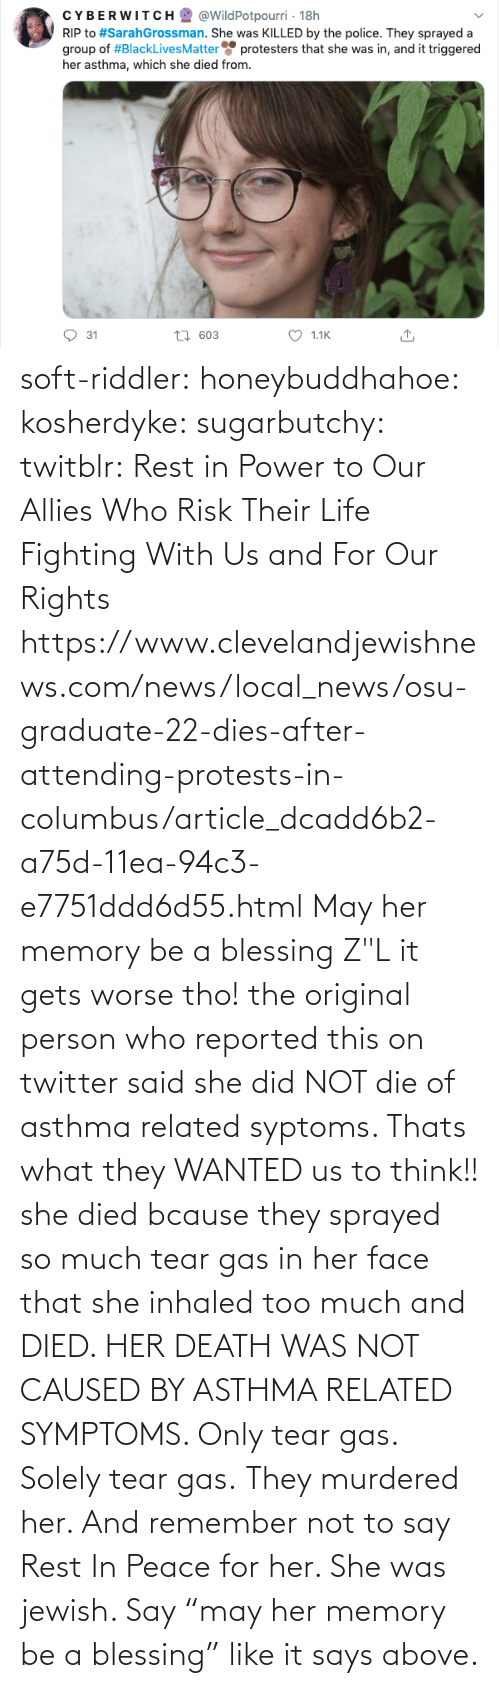 "Life: soft-riddler:  honeybuddhahoe:  kosherdyke:  sugarbutchy:  twitblr: Rest in Power to Our Allies Who Risk Their Life Fighting With Us and For Our Rights https://www.clevelandjewishnews.com/news/local_news/osu-graduate-22-dies-after-attending-protests-in-columbus/article_dcadd6b2-a75d-11ea-94c3-e7751ddd6d55.html    May her memory be a blessing Z""L  it gets worse tho! the original person who reported this on twitter said she did NOT die of asthma related syptoms. Thats what they WANTED us to think!! she died bcause they sprayed so much tear gas in her face that she inhaled too much and DIED. HER DEATH WAS NOT CAUSED BY ASTHMA RELATED SYMPTOMS. Only tear gas. Solely tear gas. They murdered her.     And remember not to say Rest In Peace for her. She was jewish. Say ""may her memory be a blessing"" like it says above."